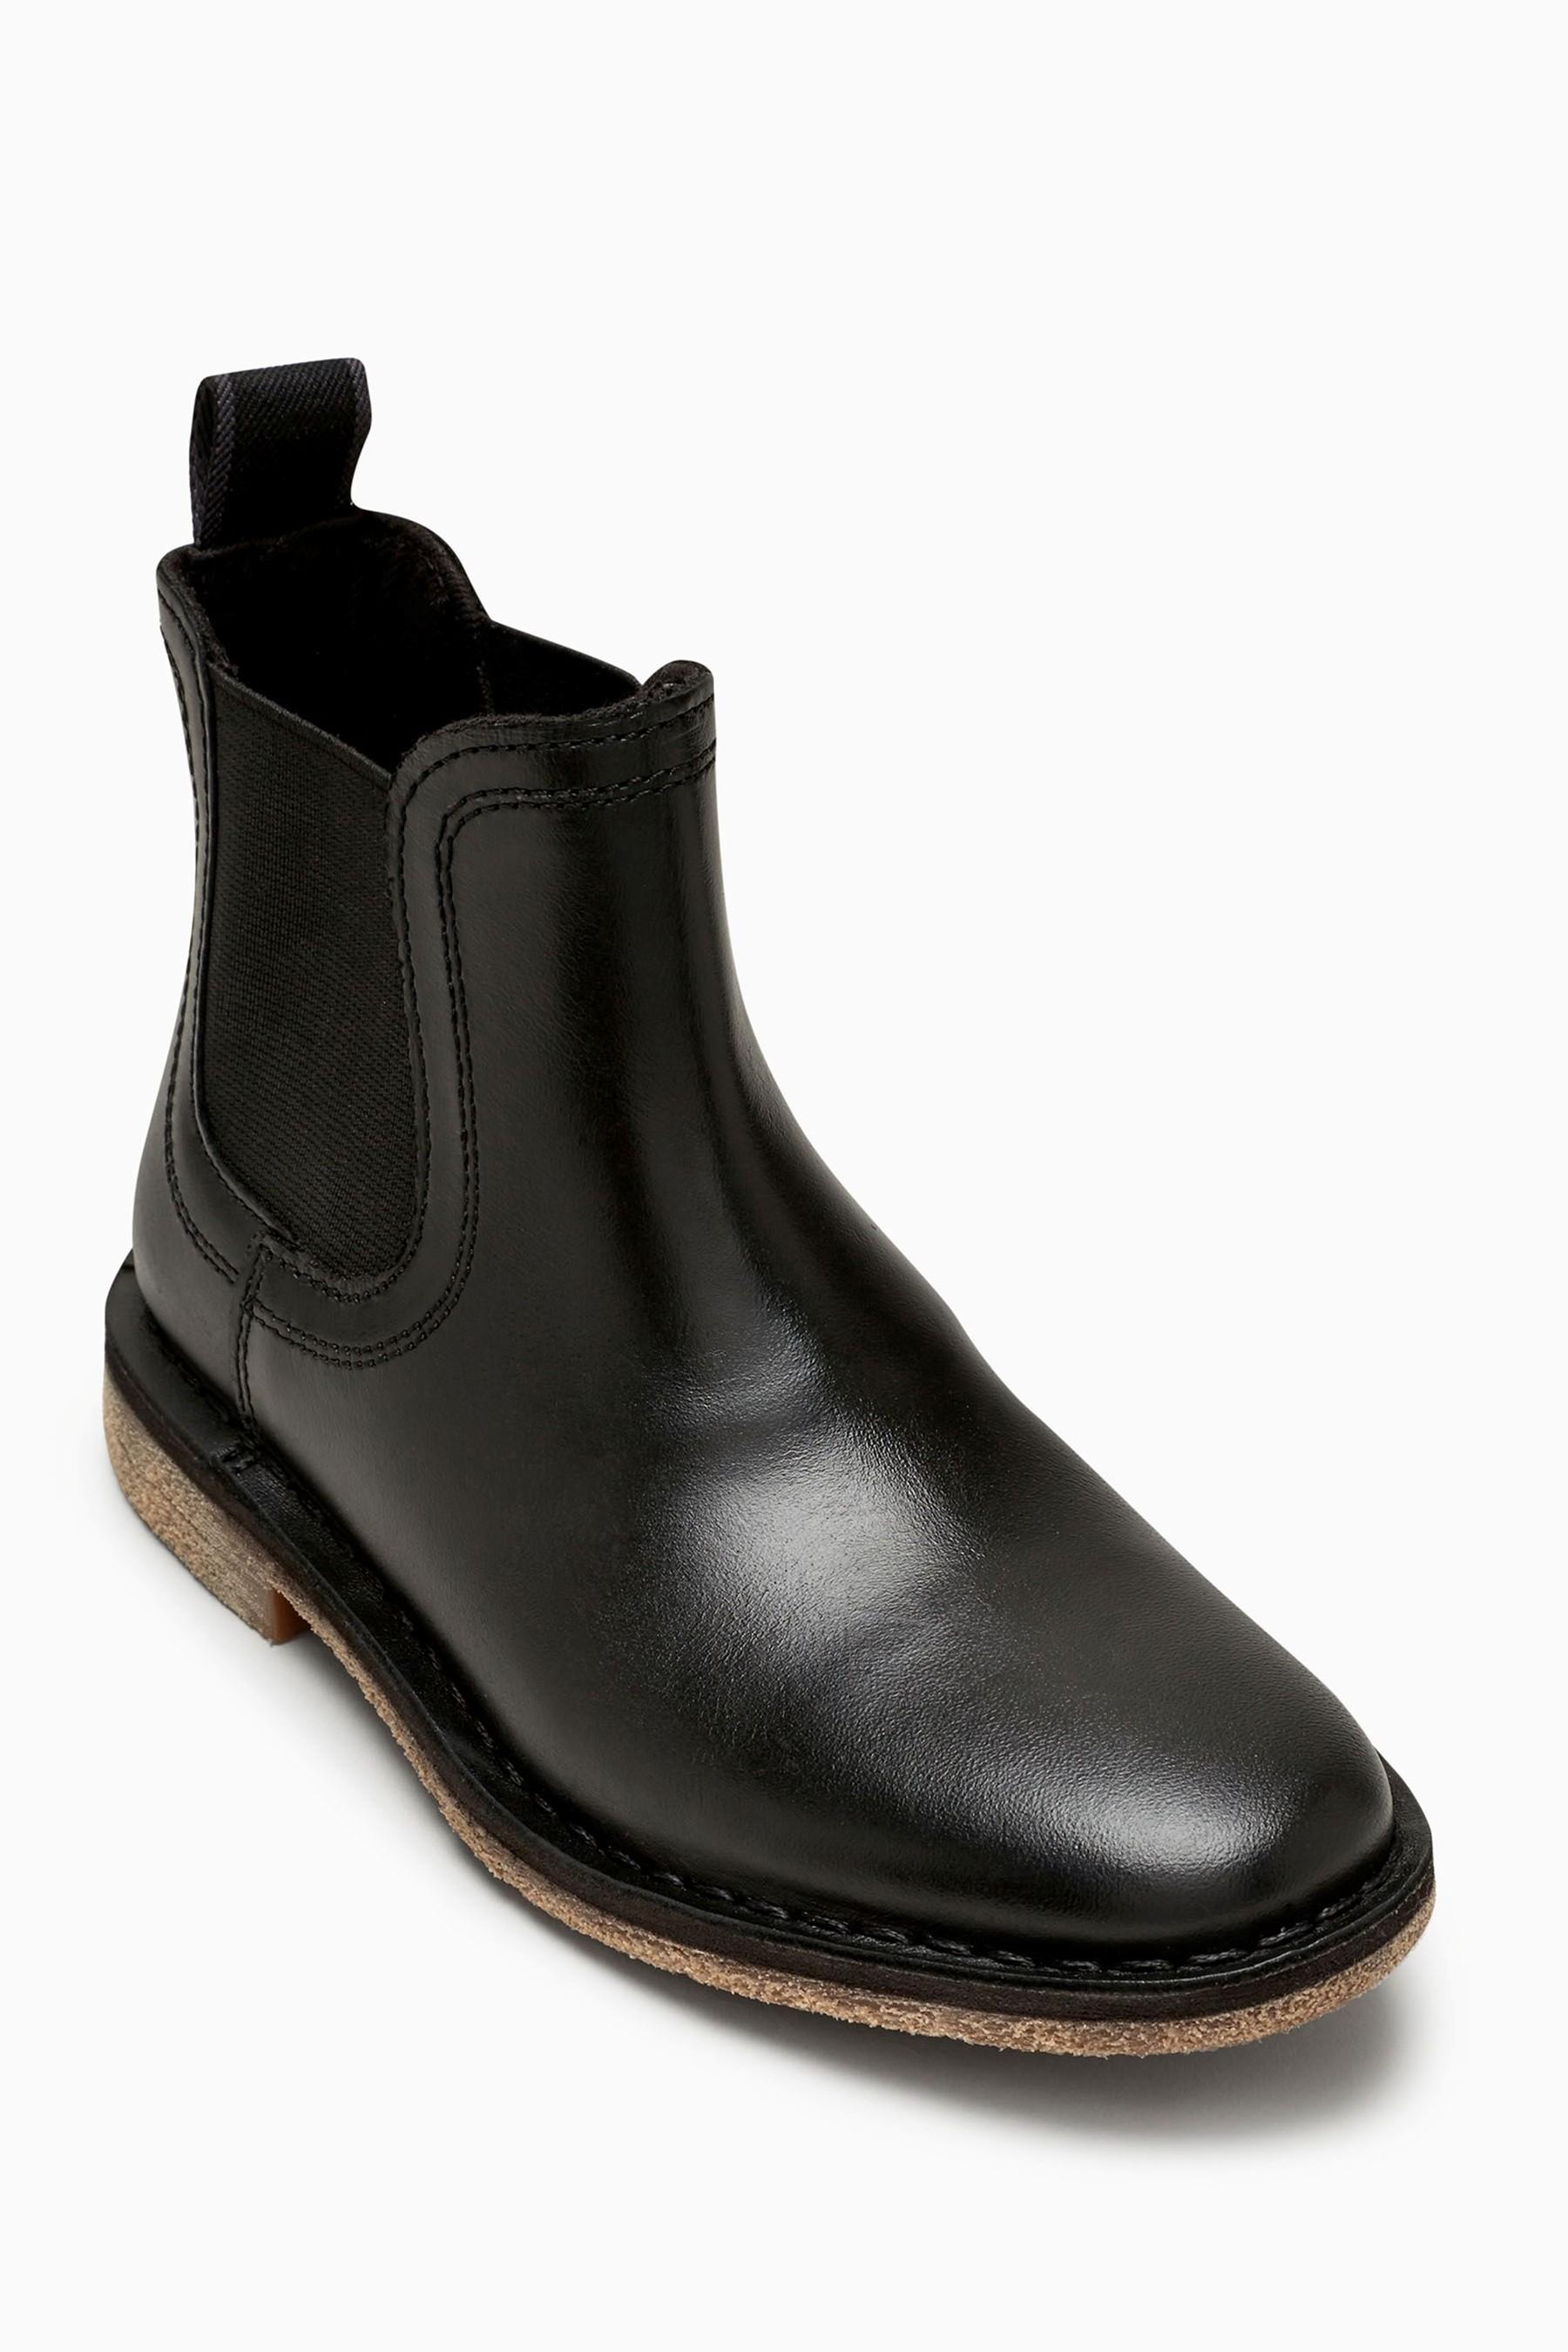 Find great deals on eBay for boys chelsea boots and boys chelsea boots size 1. Shop with confidence.